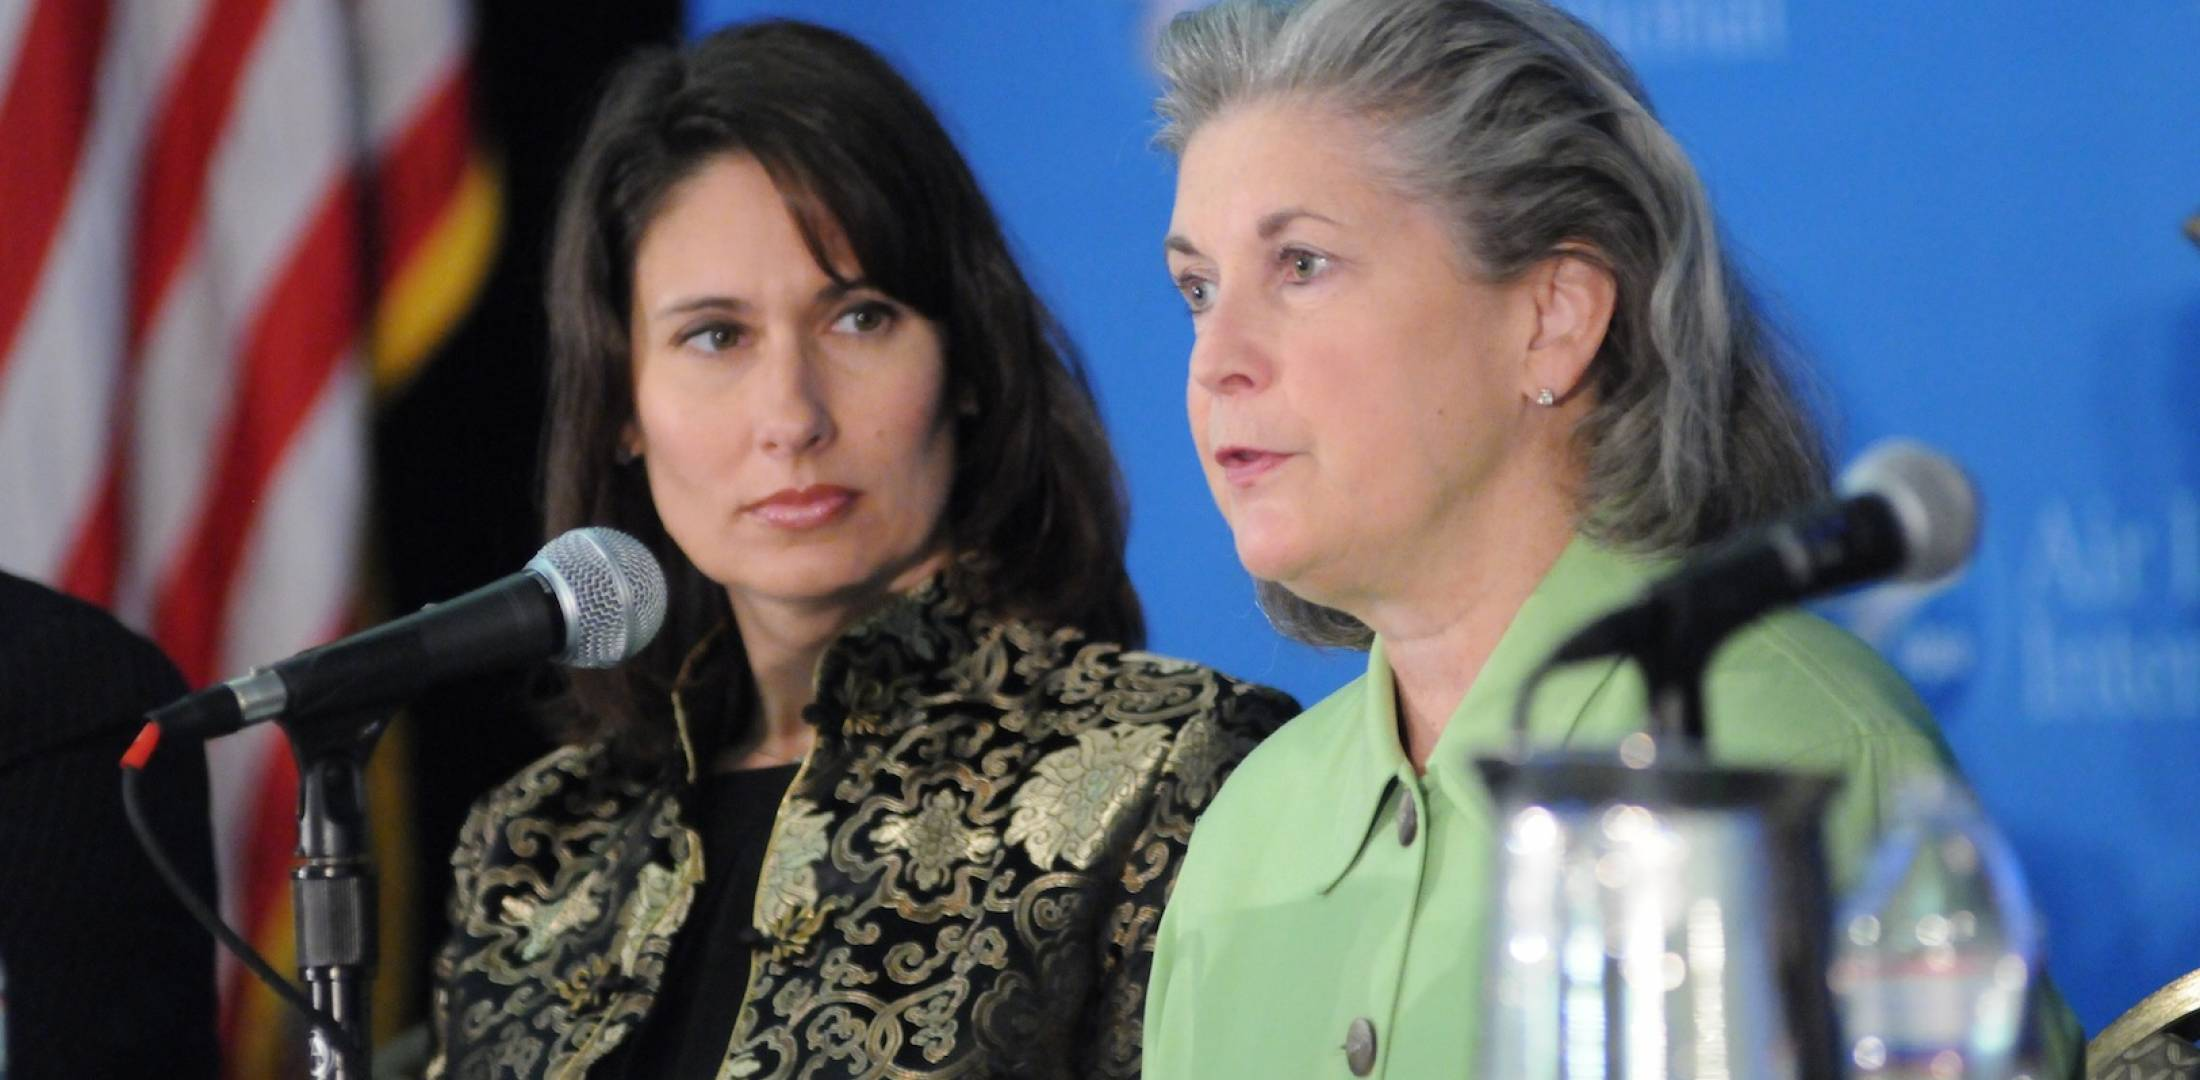 NTSB Chairman Deborah Hersman, left, and Margaret Gilligan, FAA associate administrator for aviation safety.